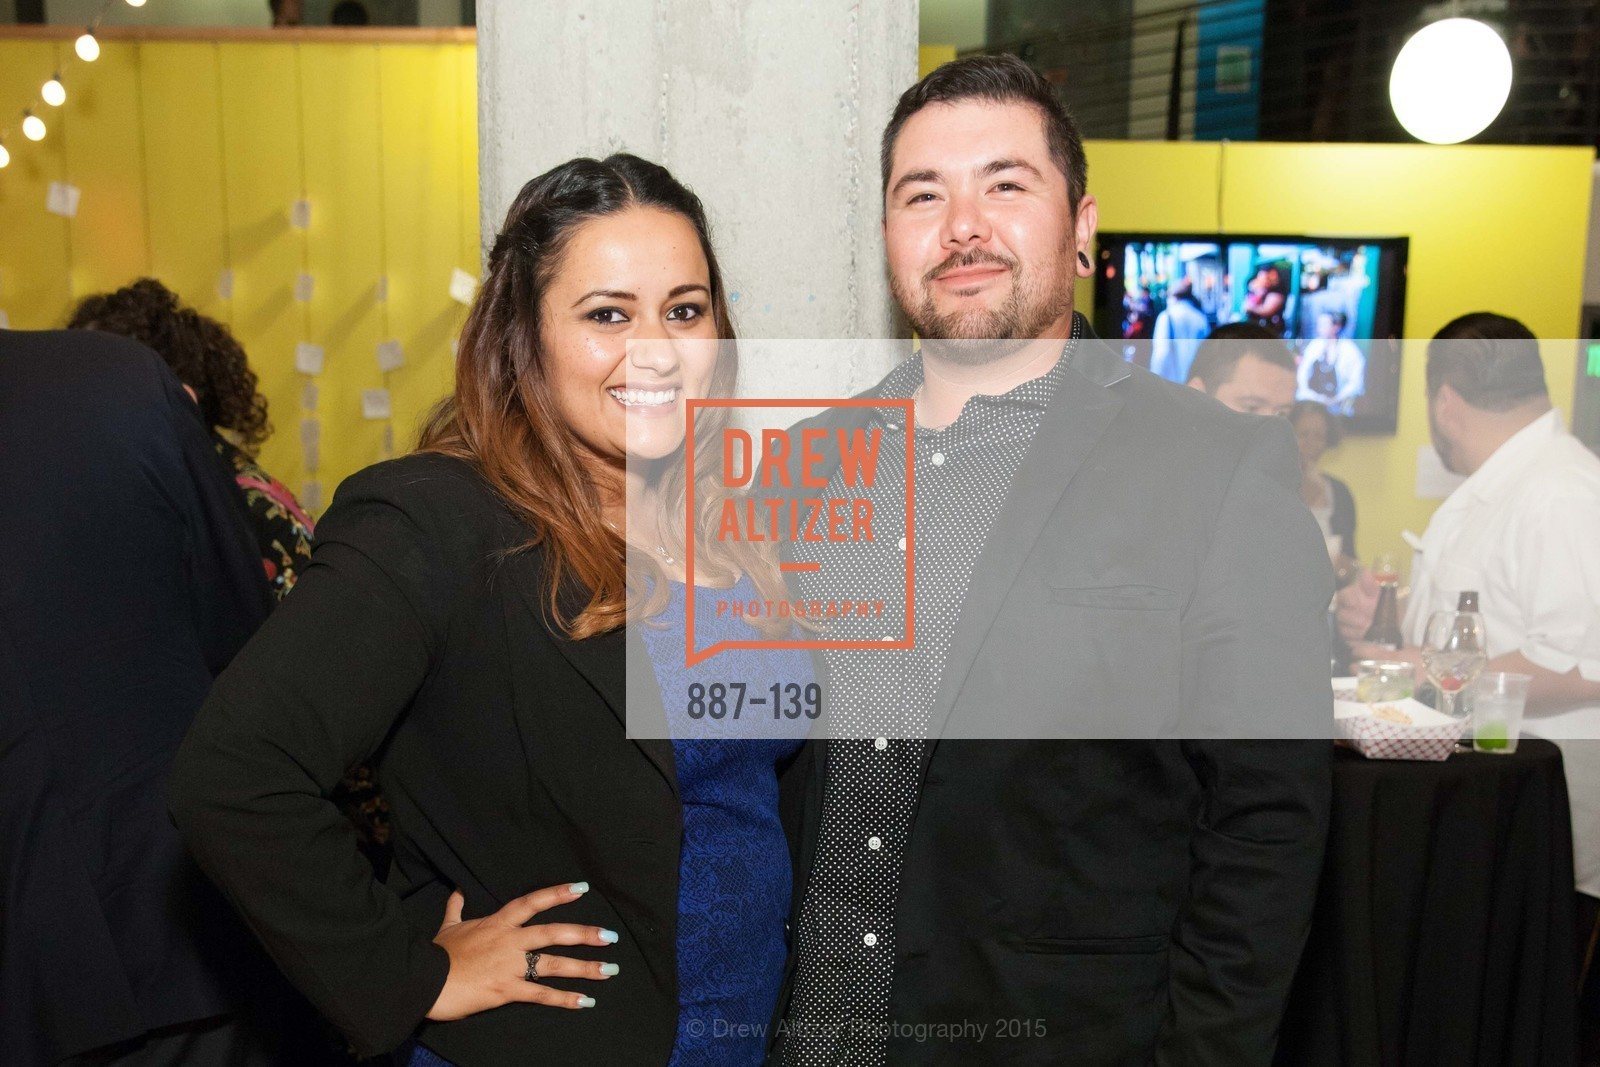 Tanya Buenrostro, Juan Vargas, Homeless Prenatal Program Our House, Our Mission Gala, 2500 18th St, May 29th, 2015,Drew Altizer, Drew Altizer Photography, full-service agency, private events, San Francisco photographer, photographer california